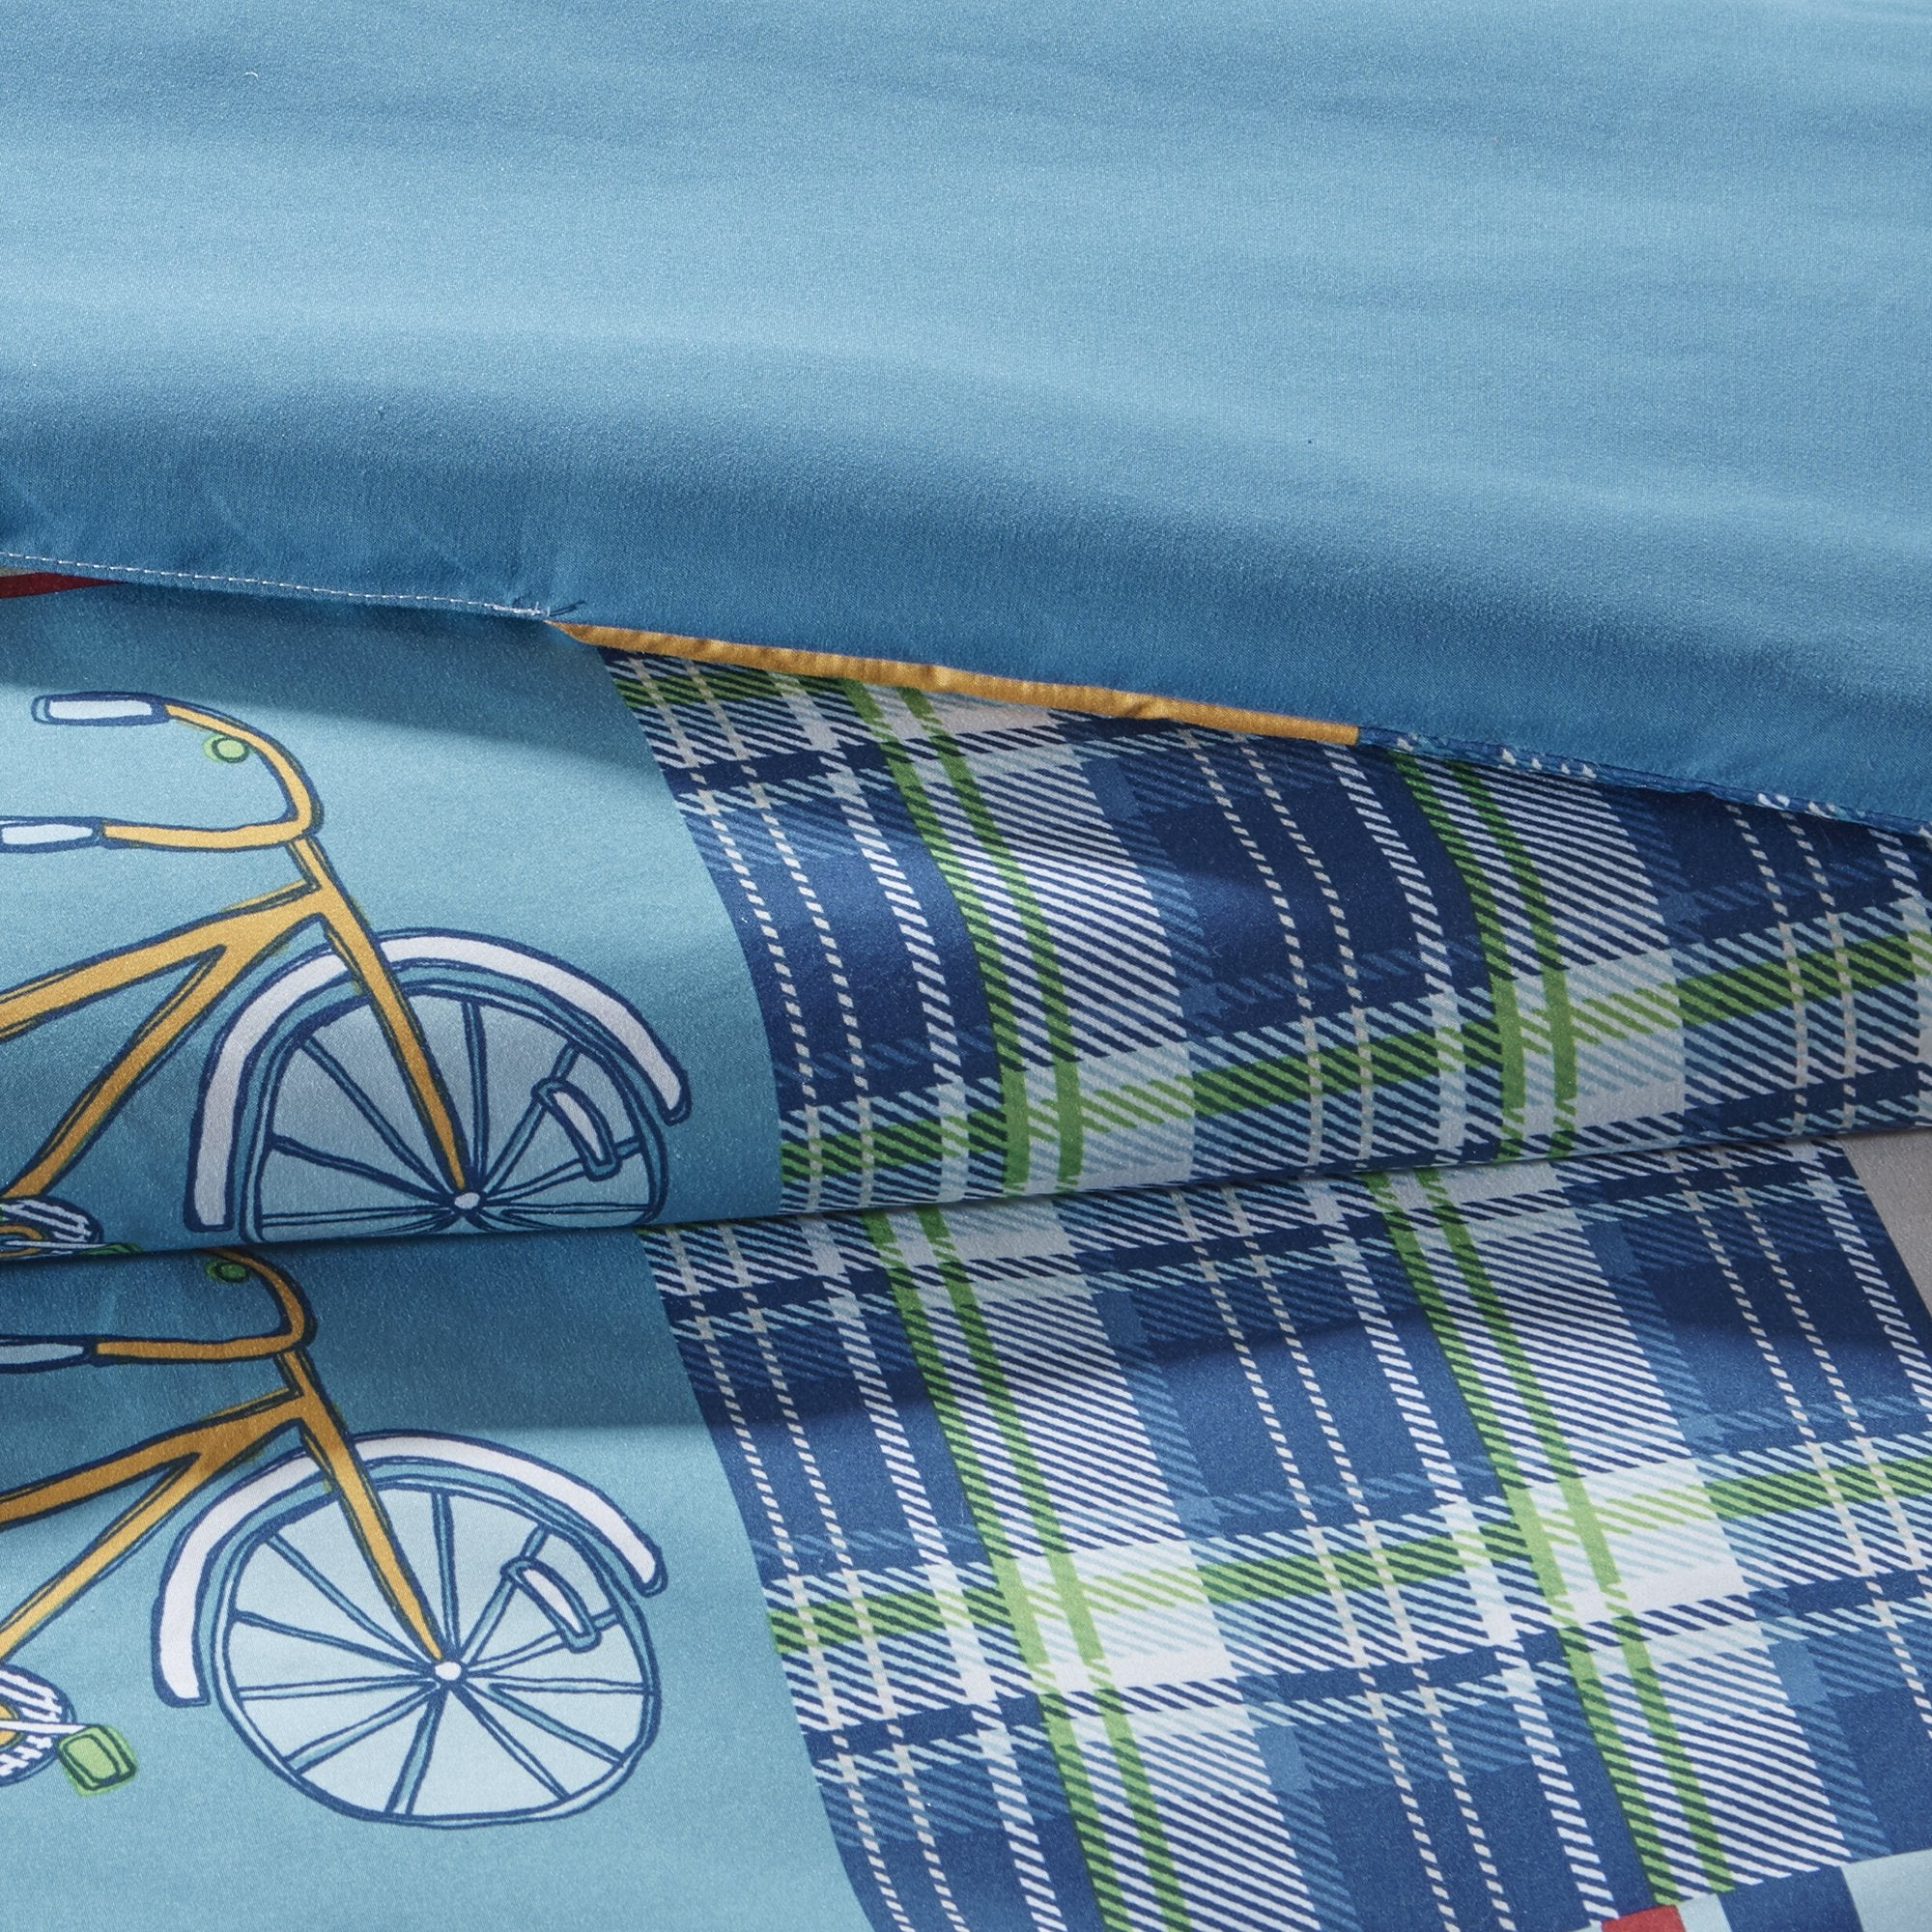 Boys Transportation Patchwpork Plaid Comforter Full Set Fun Train Train Bicycle Airplane Pattern Bedding Car Bus Stop Sign Light Stripe Themed Blue